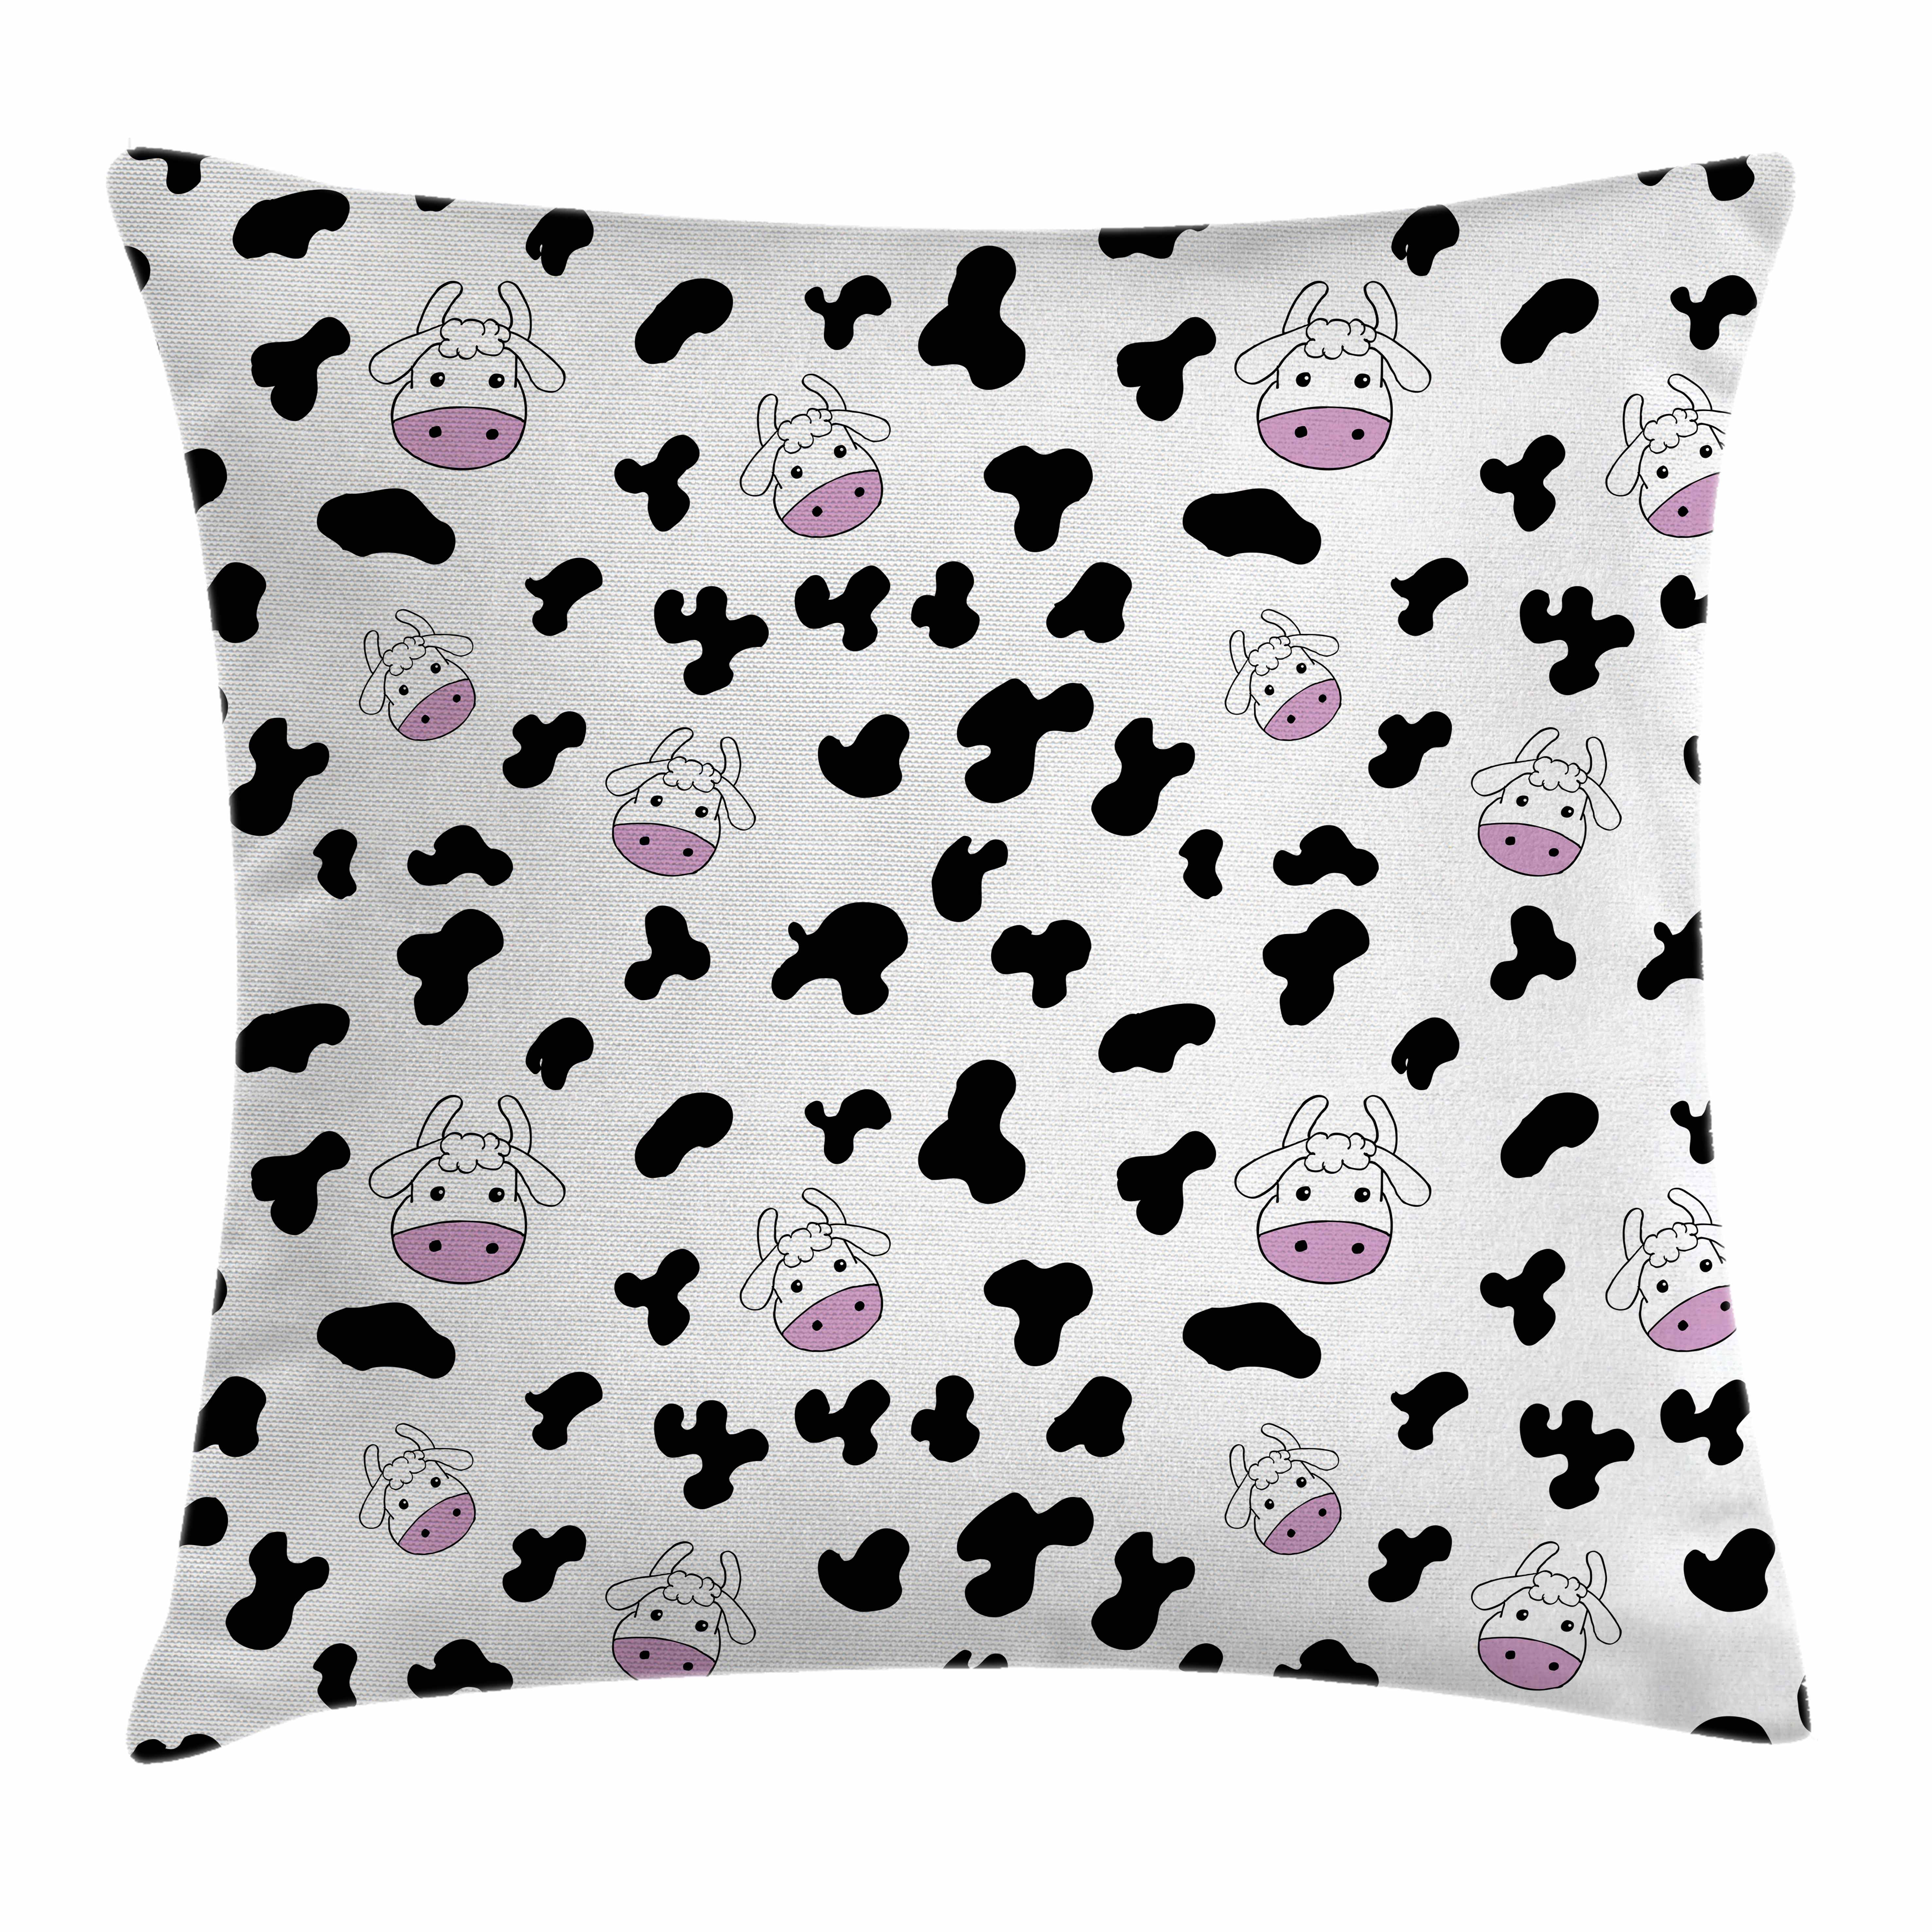 Cow Print Throw Pillow Cushion Cover, Animal Cow Hide Pattern Doodle Cartoon Children Drawing Farming Husbandry, Decorative Square Accent Pillow Case, 16 X 16 Inches, Black White Pink, by Ambesonne